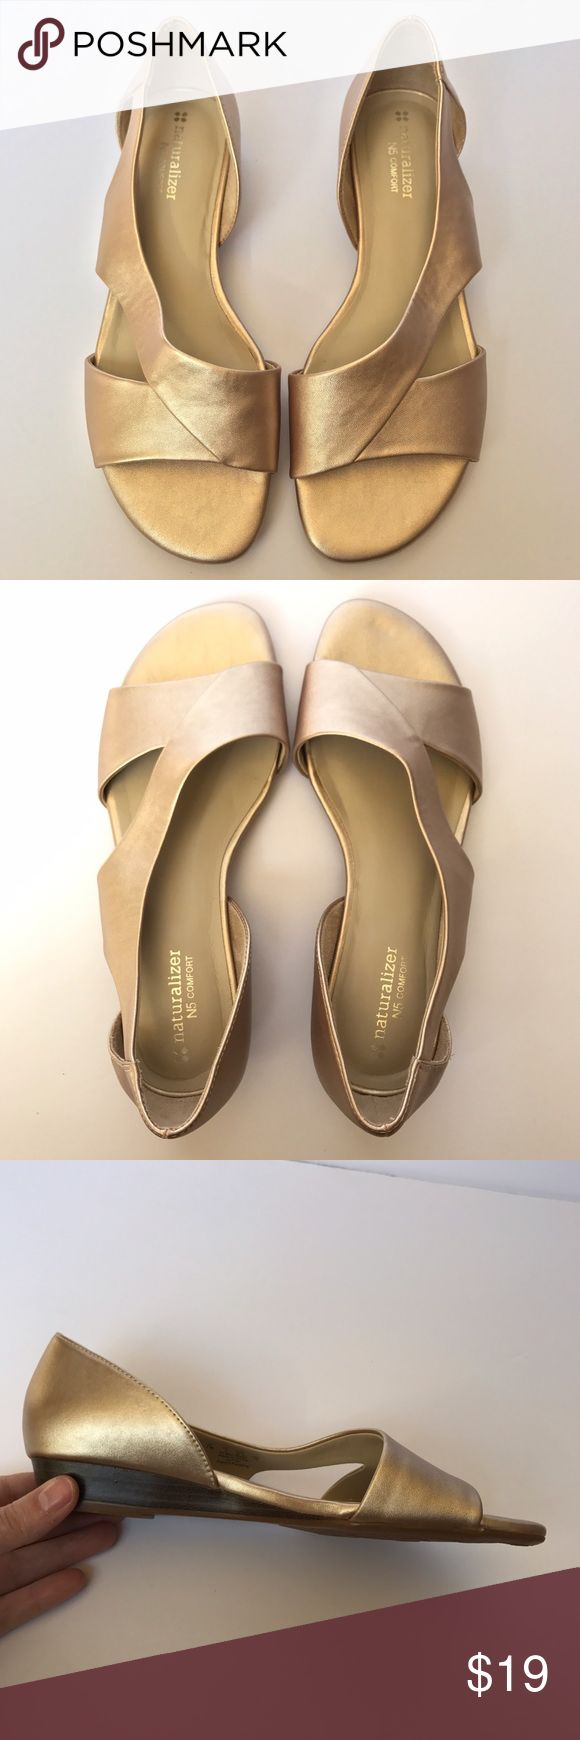 • Naturalizer • gold colored sandals Gorgeous light gold colored sandals. Metallic shoes with wide straps. Very small wedge style heel. So comfortable and stylish! Only worn once. Naturalizer Shoes Sandals